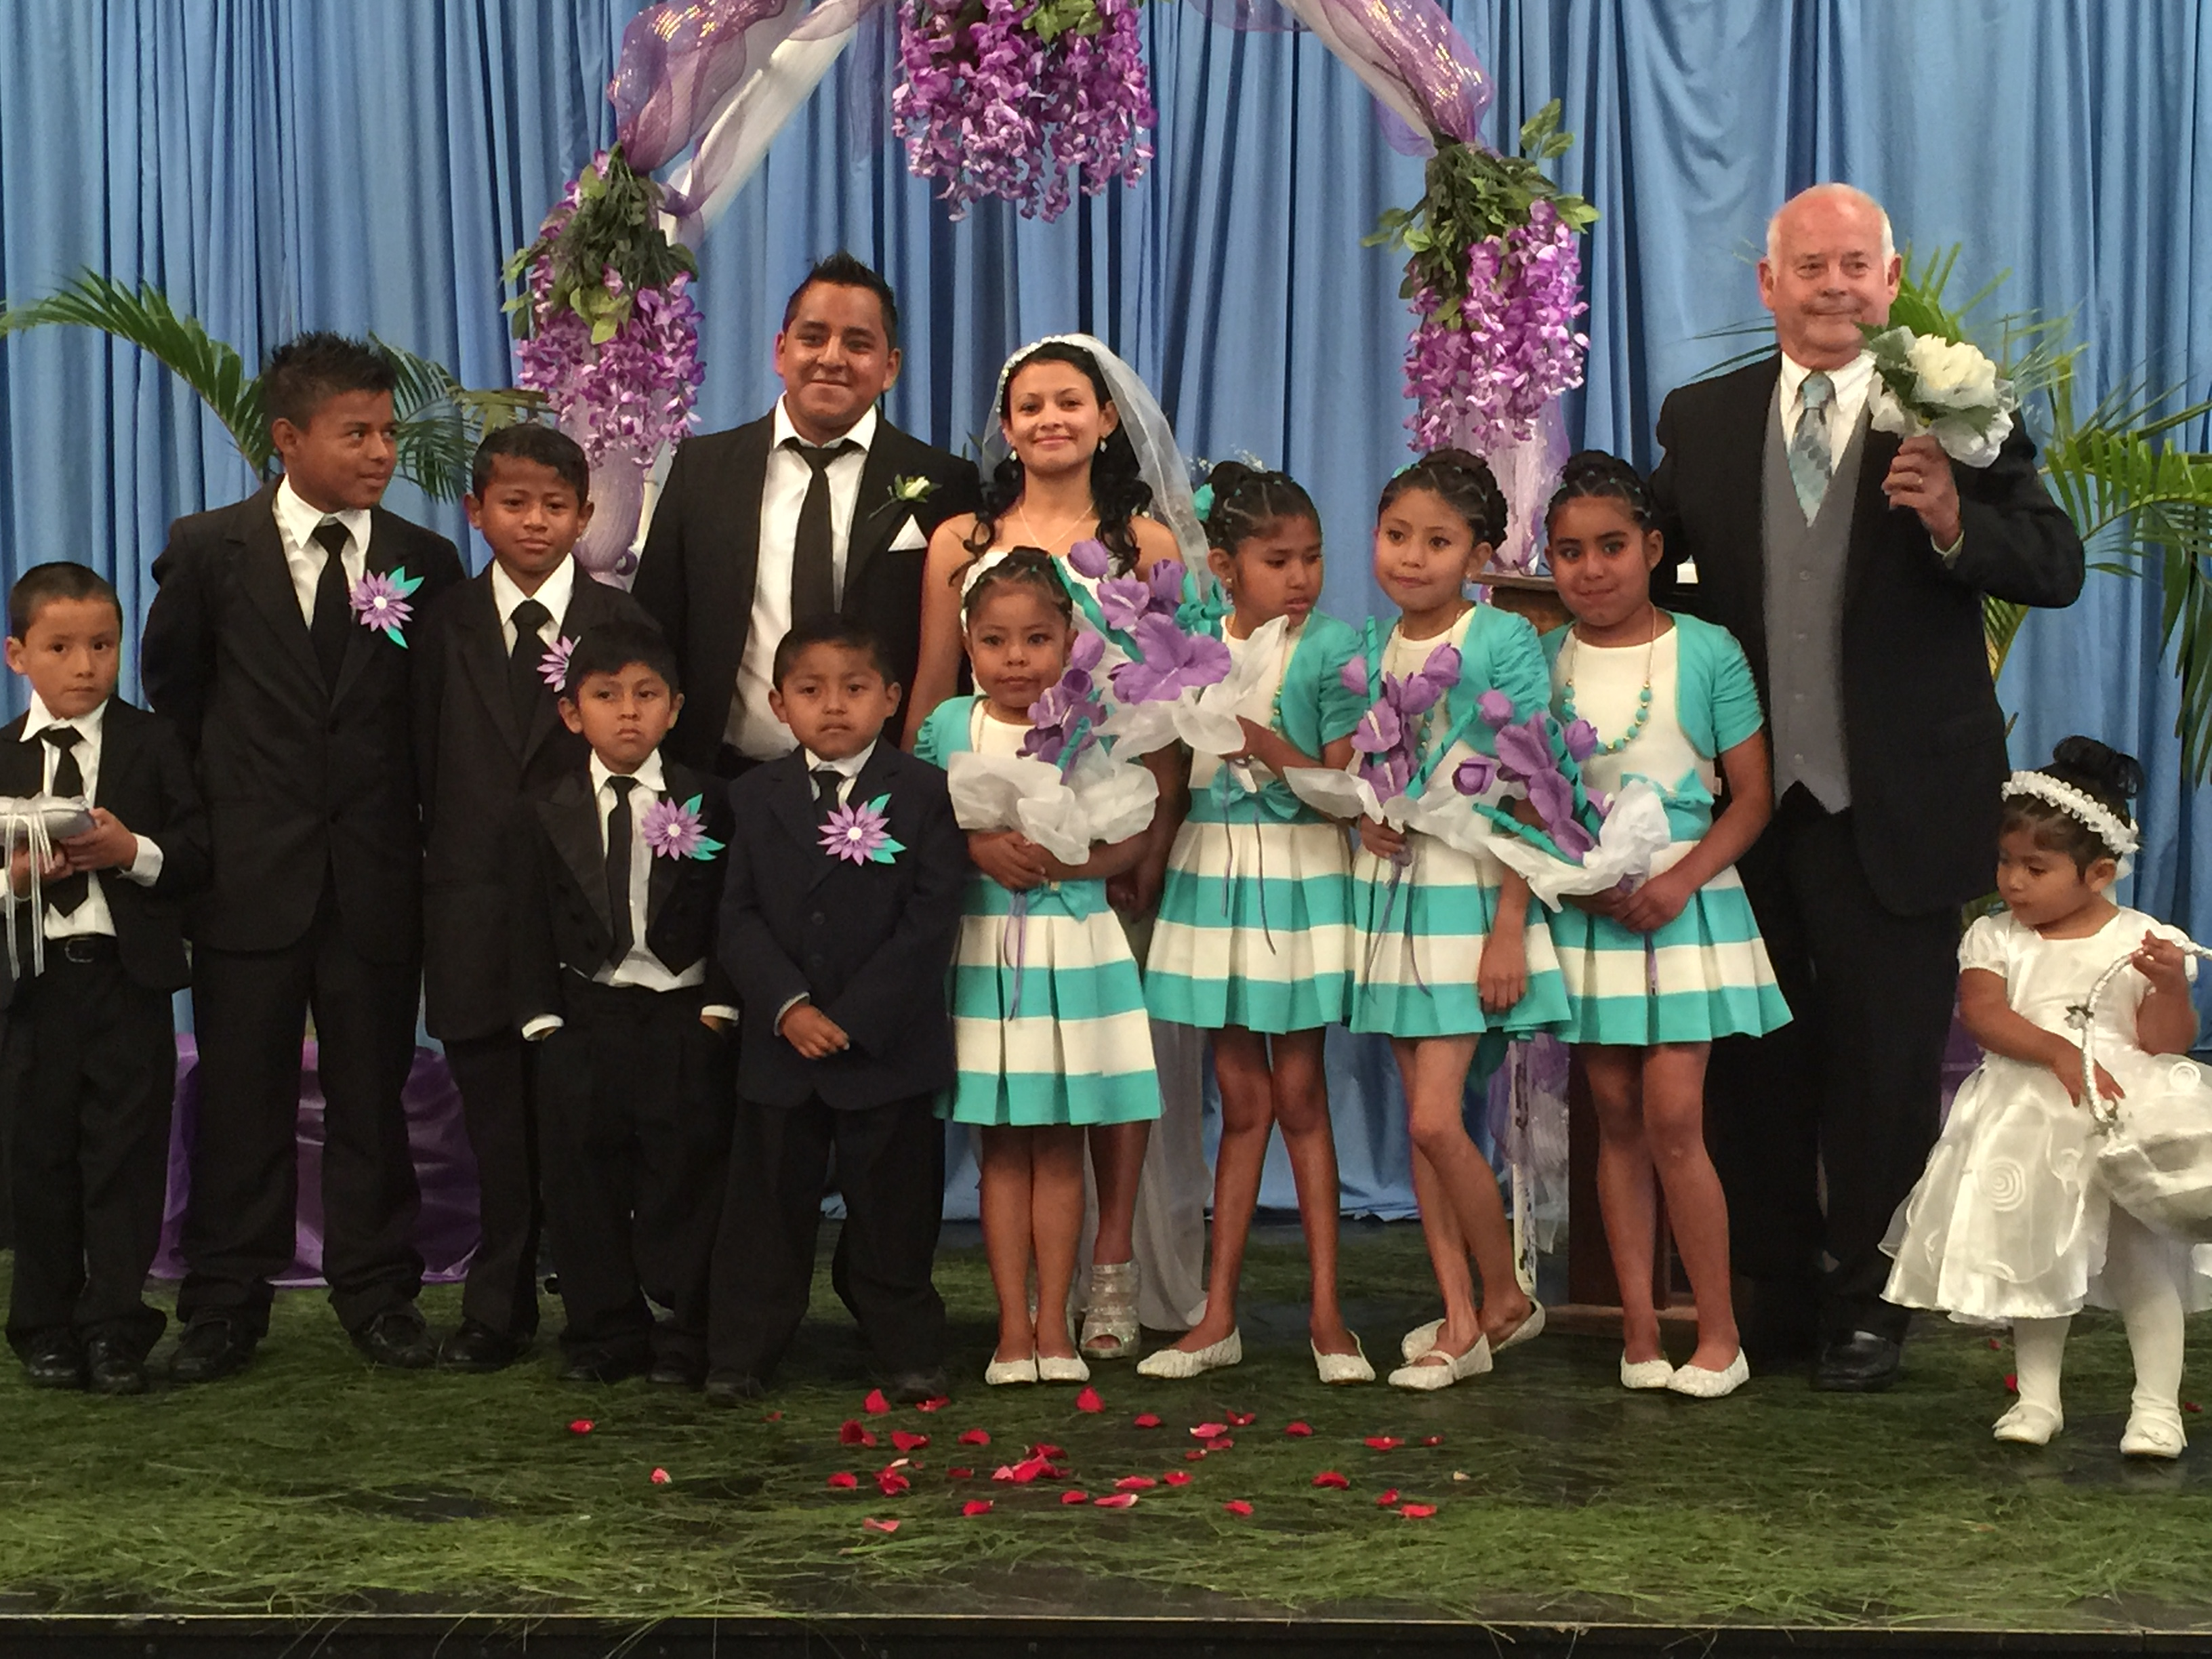 Rosario chose the dialysis children as groomsmen and brides maids